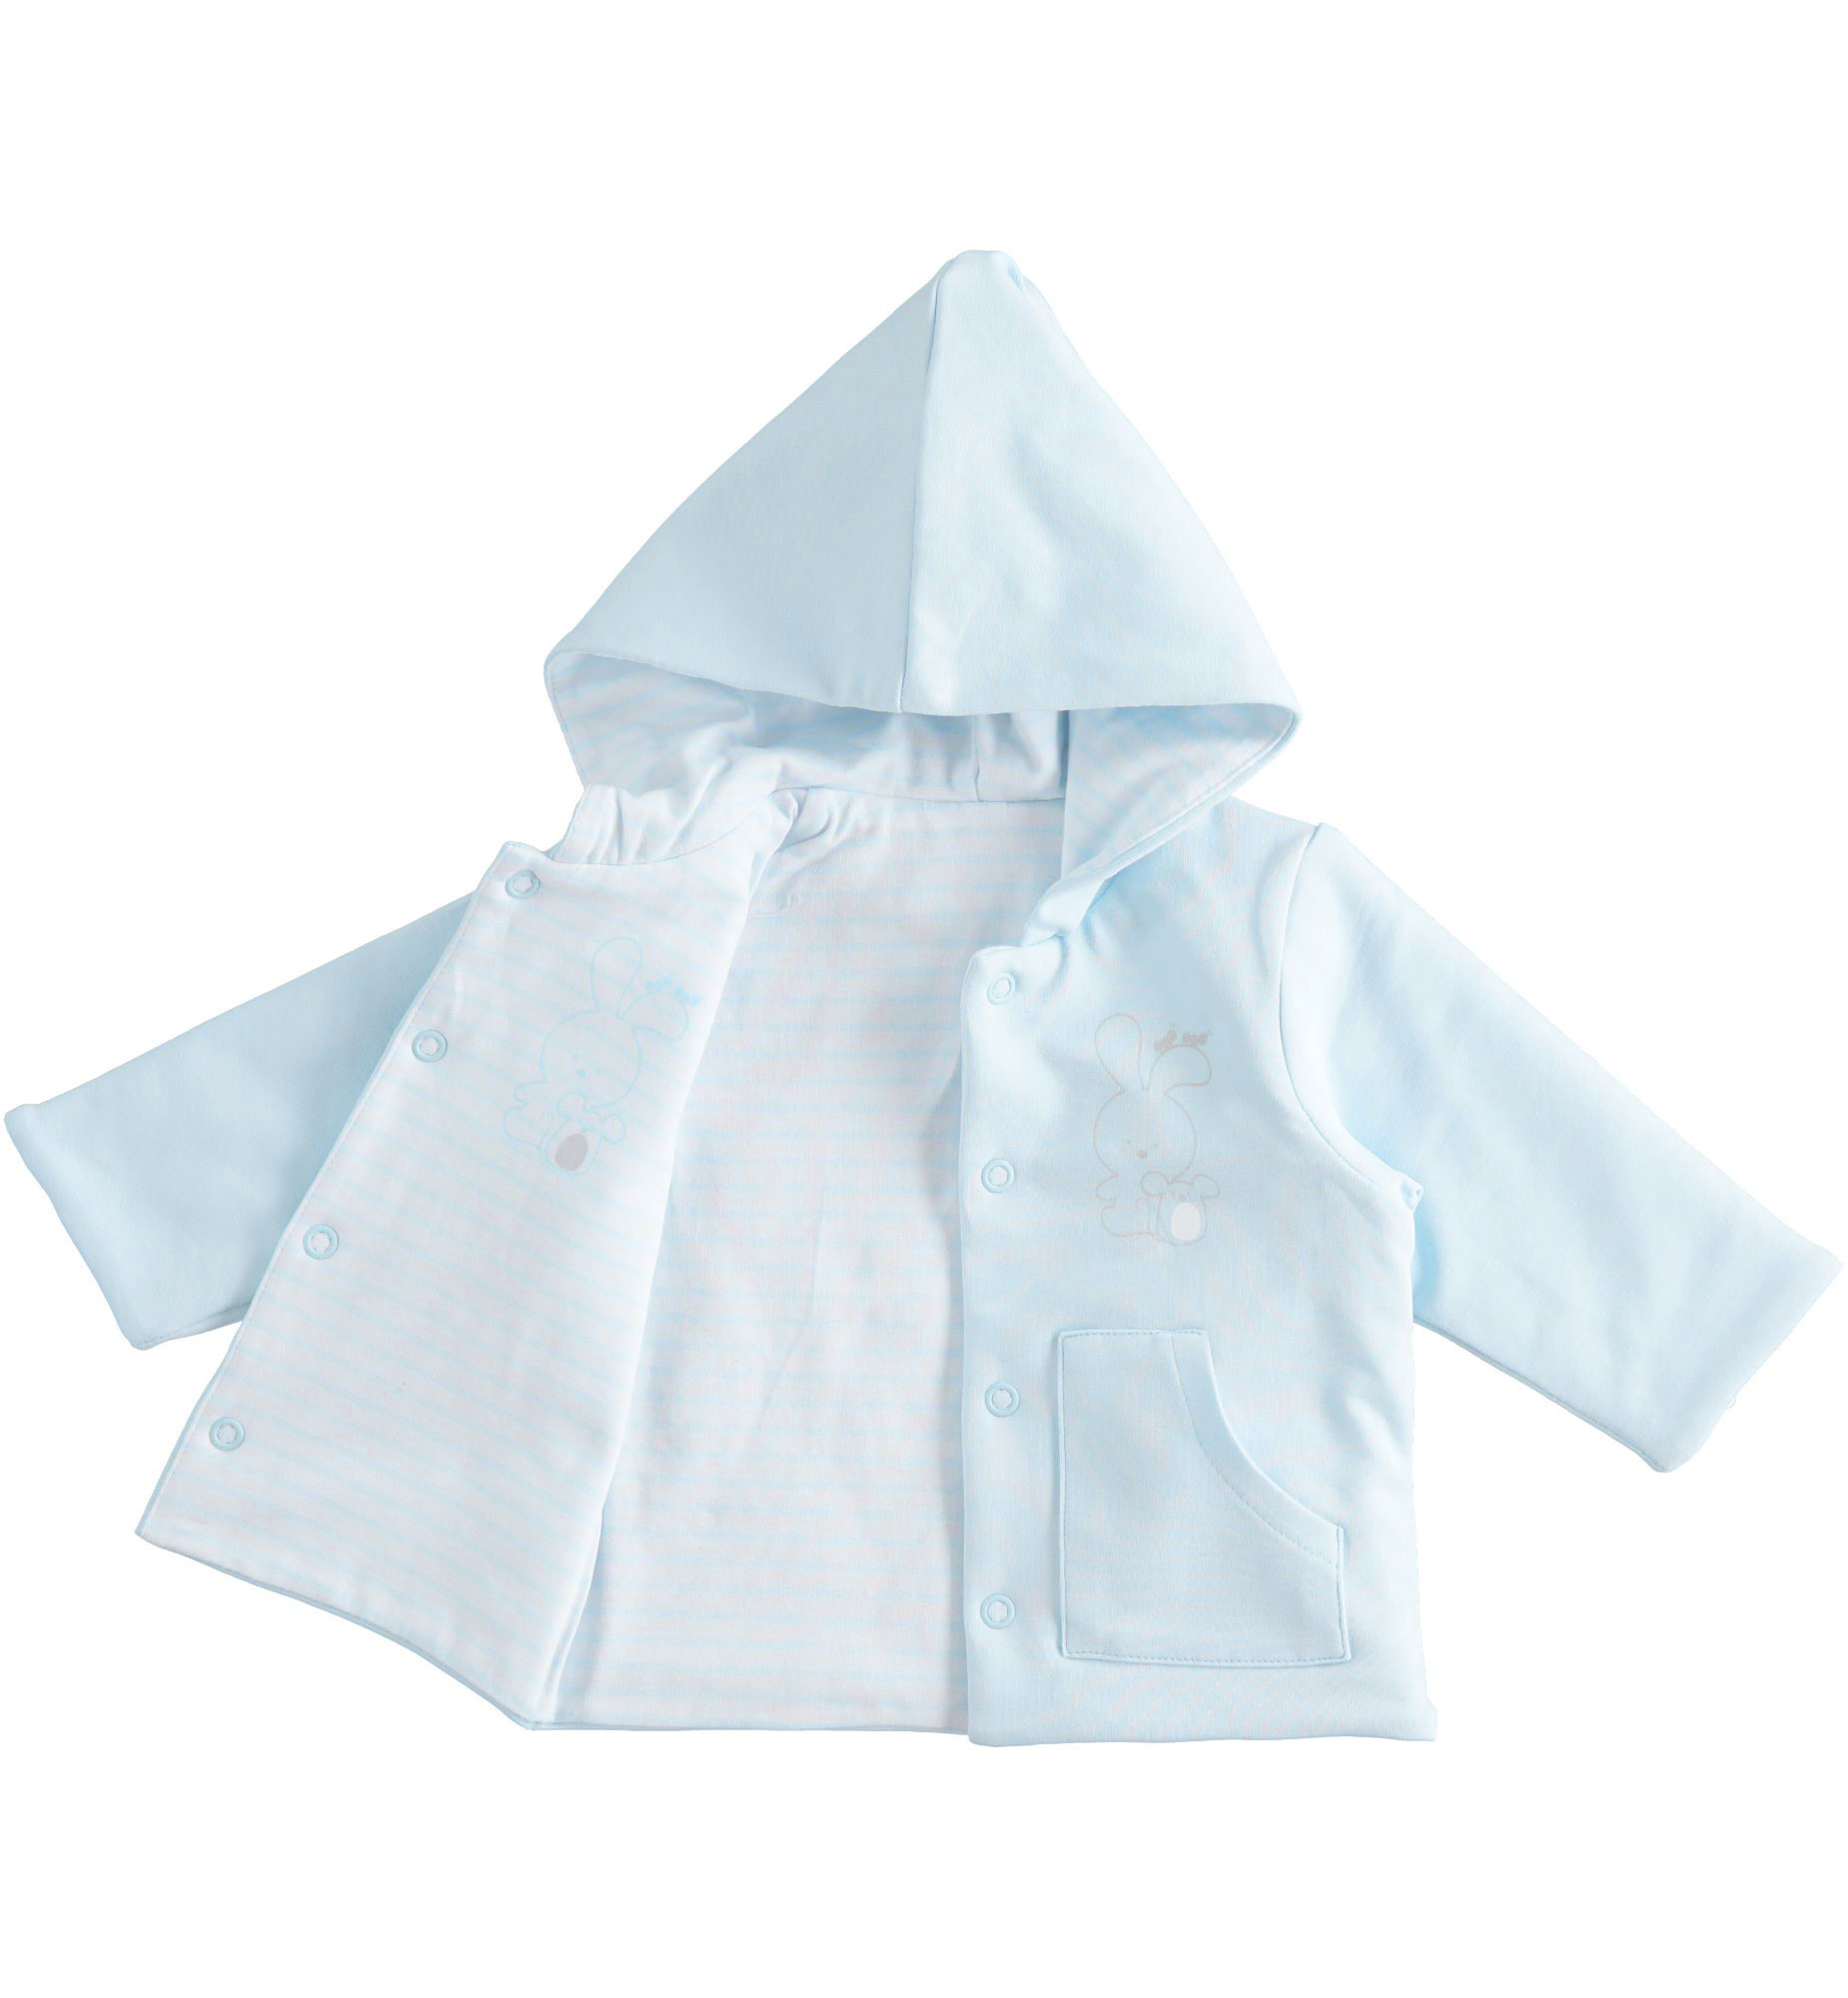 iDo iDO SS20 Boys Baby Blue and White Reversible Bunny Jacket J047